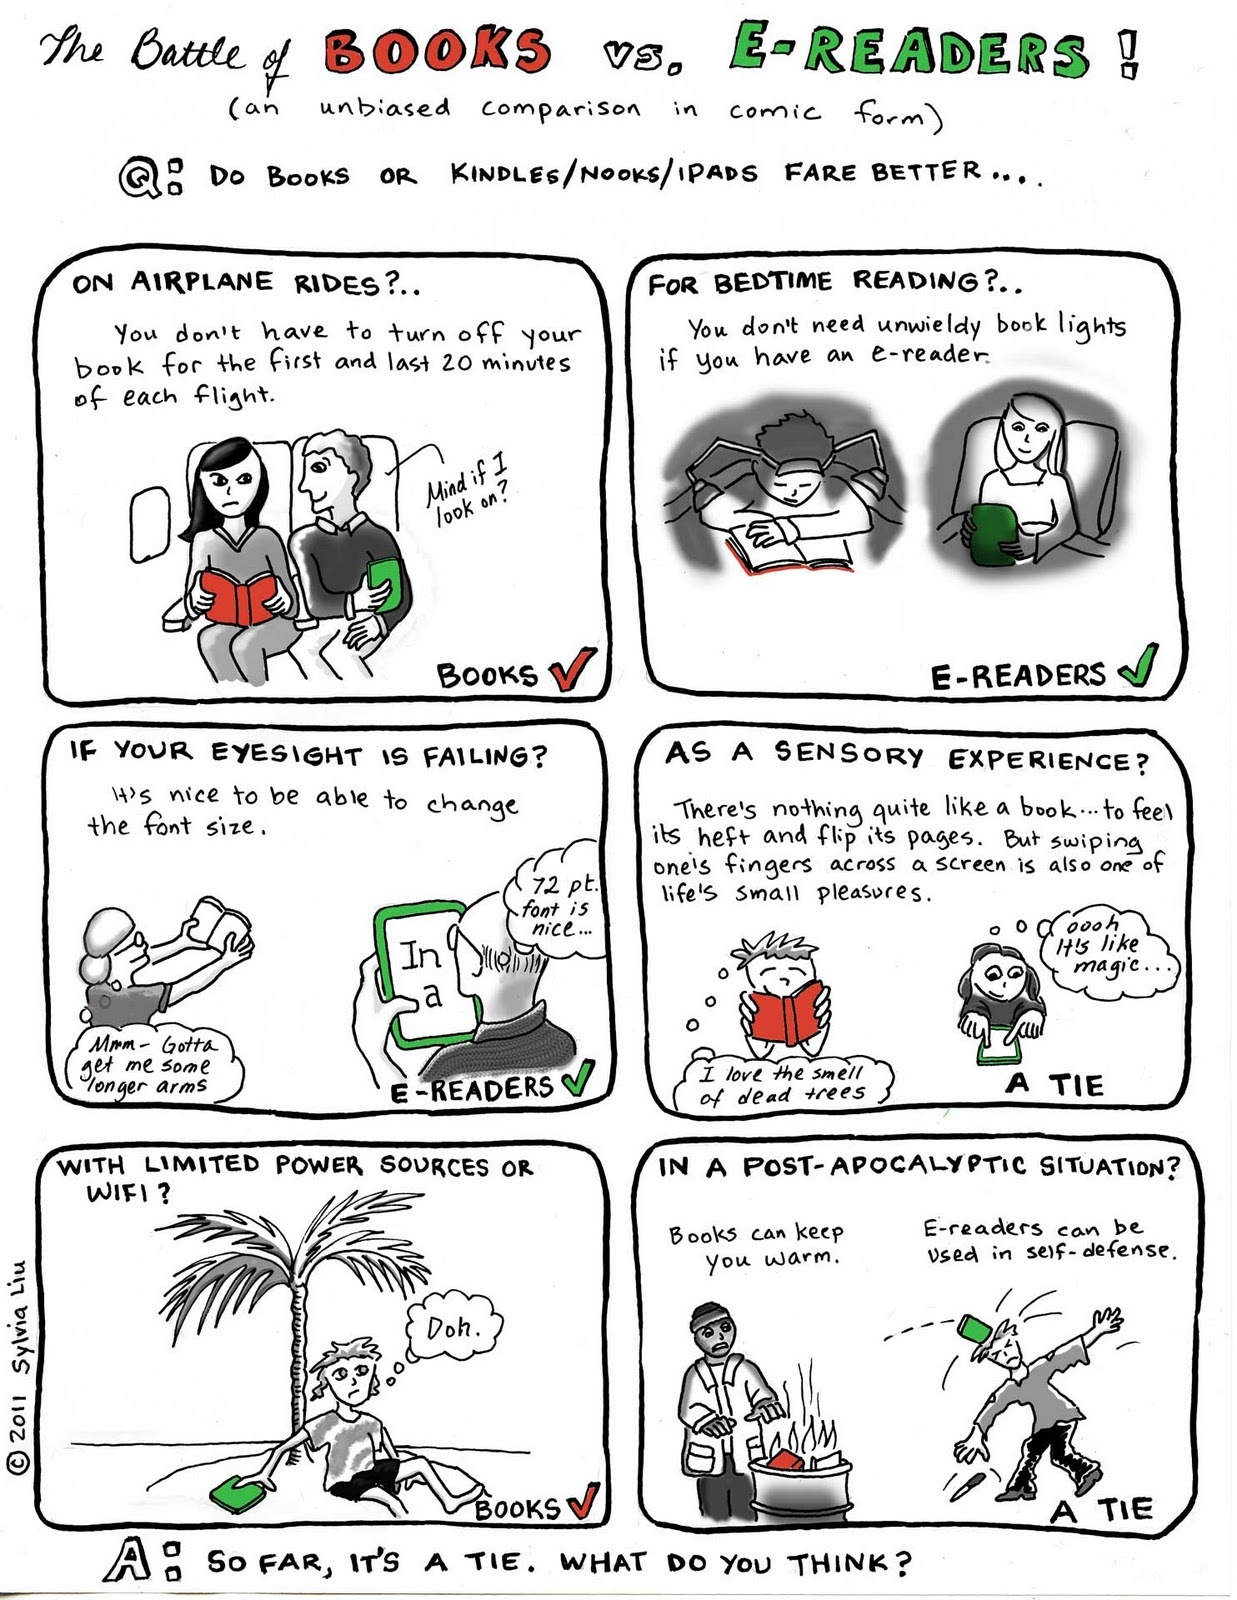 The battle between books and e-readers - cartoon